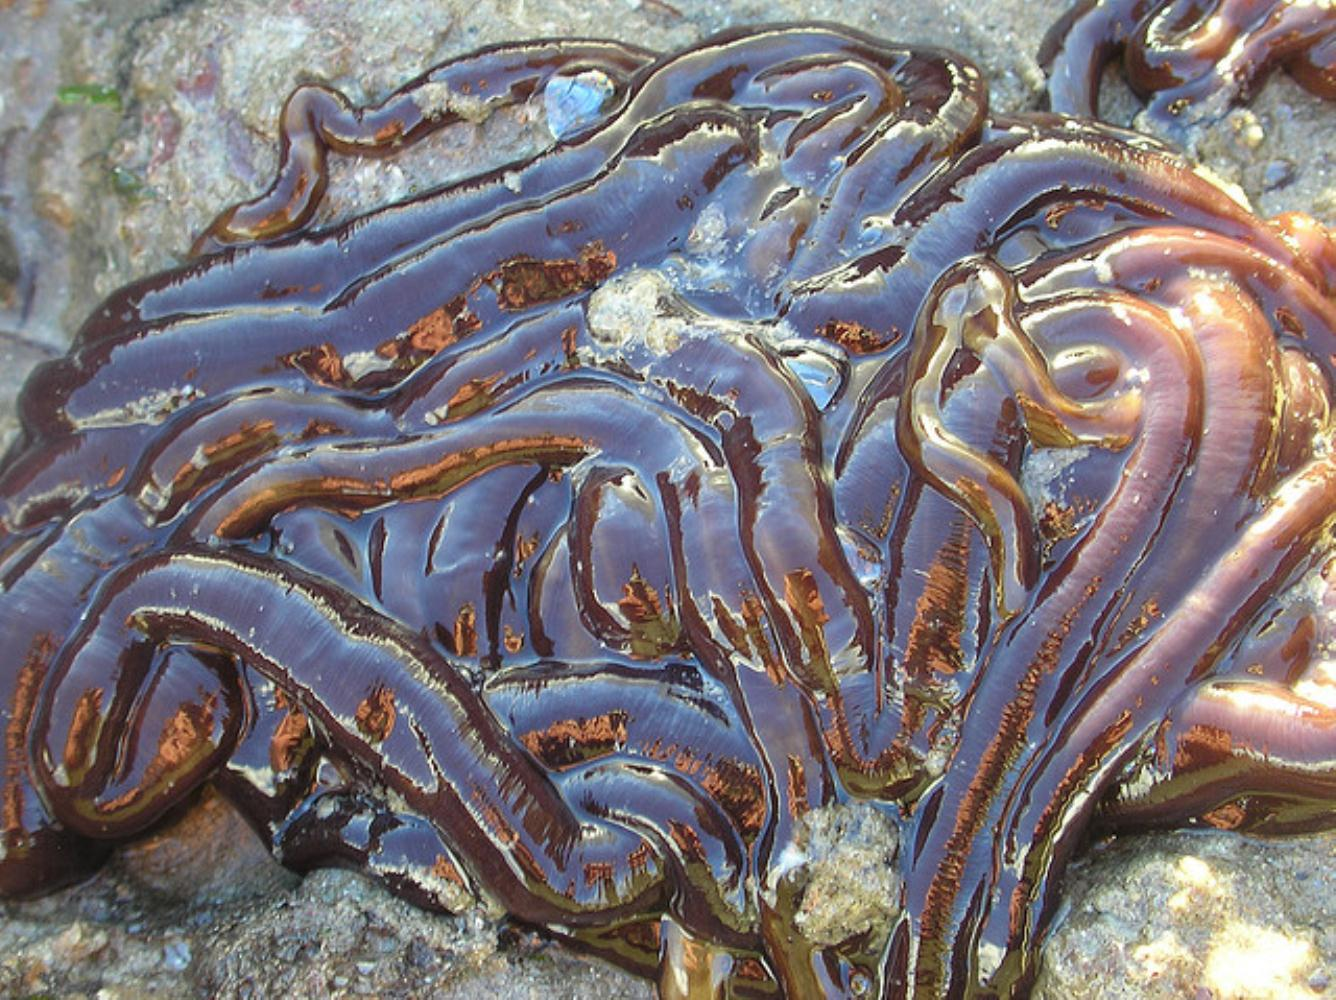 Bootlace Worm